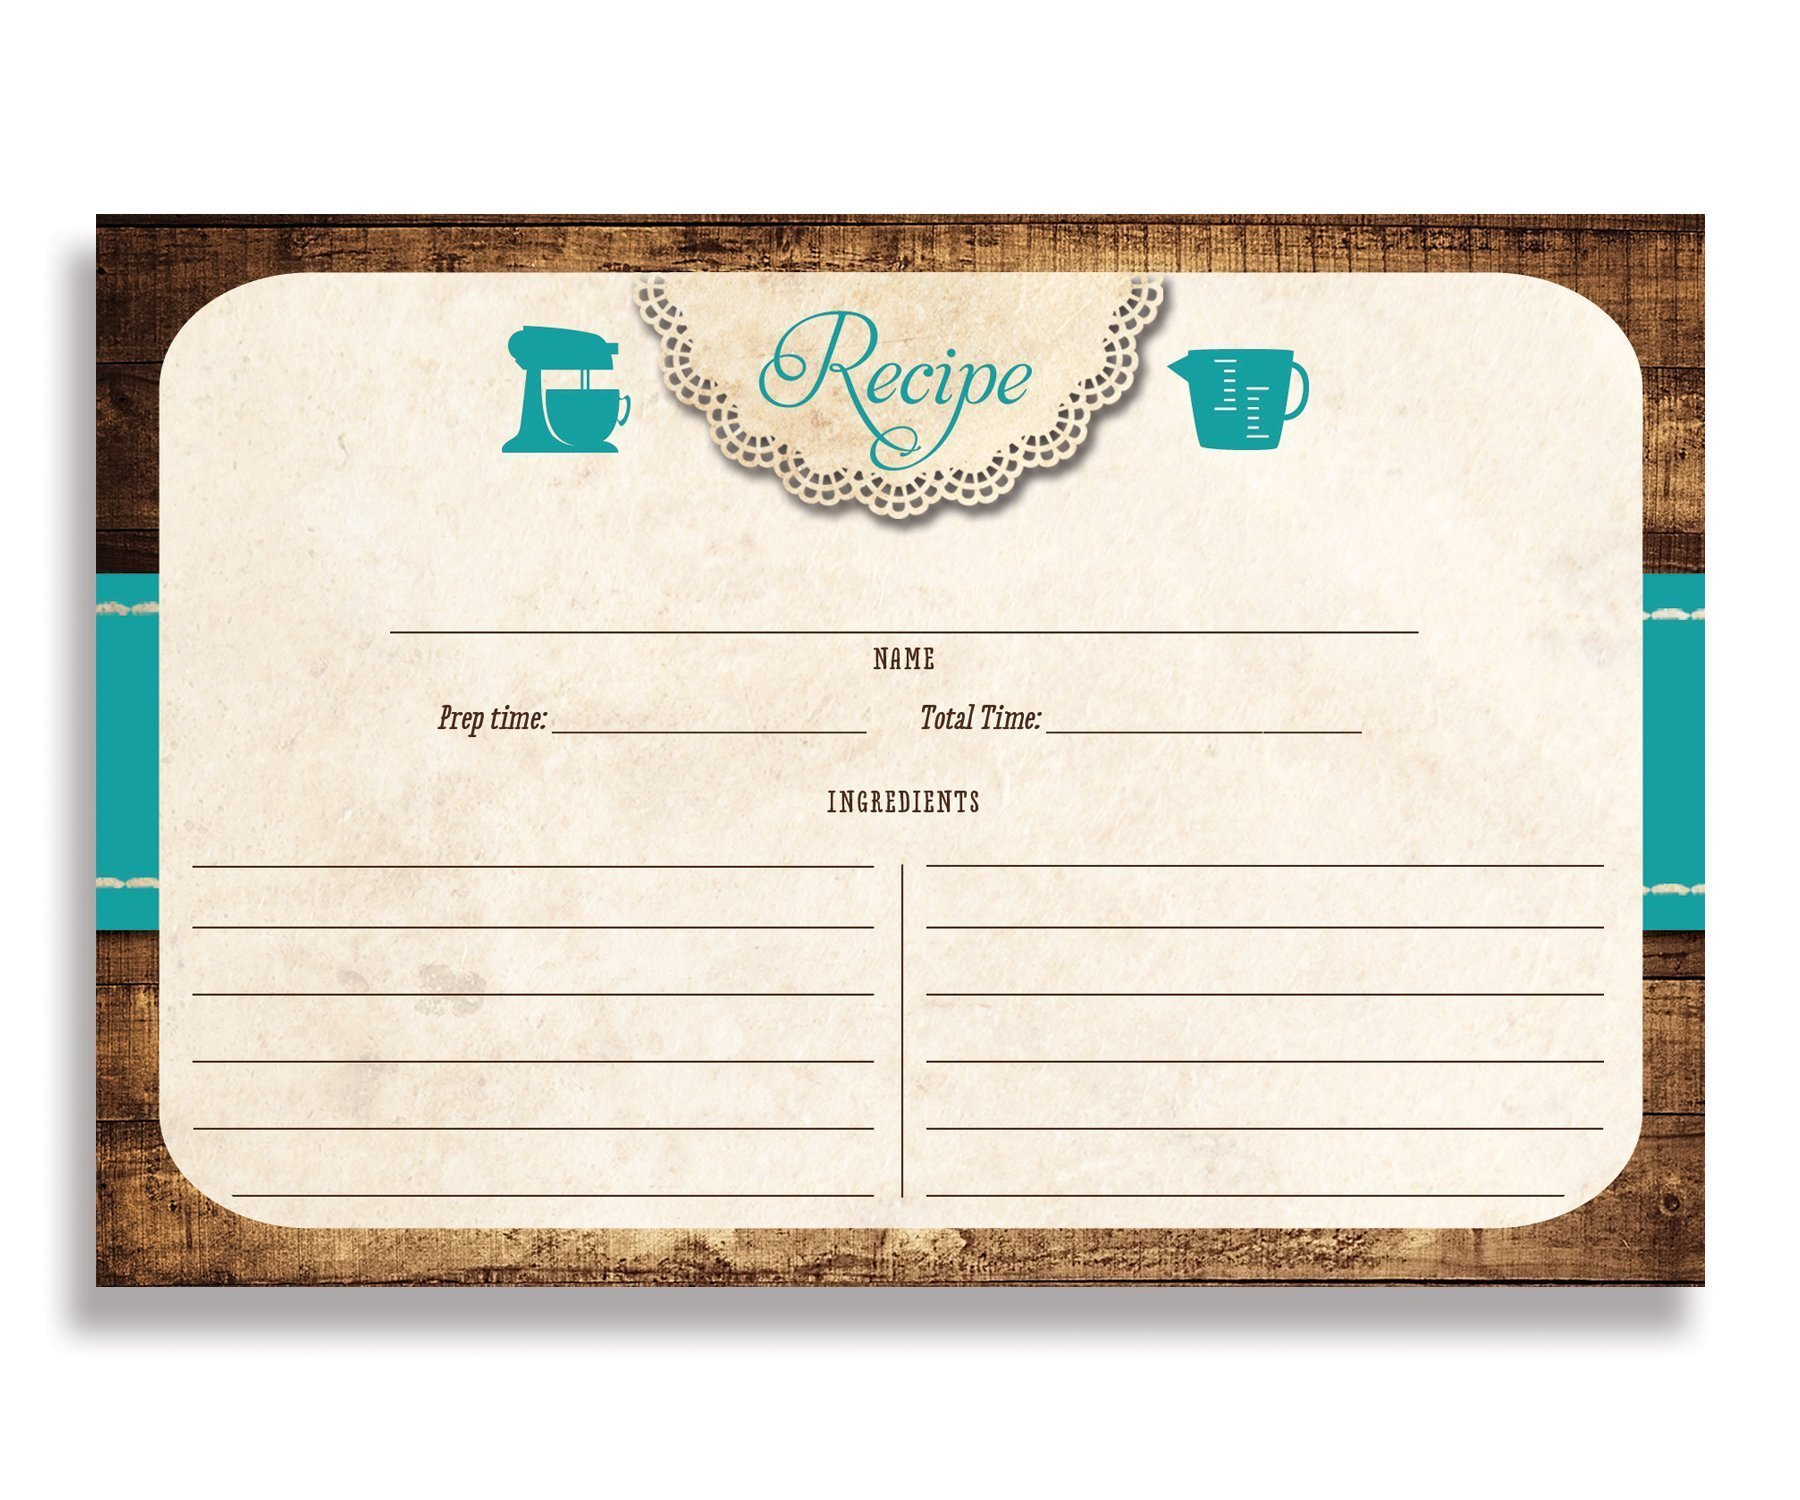 Lace Rustic Recipe Cards (Set of 25) 4x6 inches. Double Sided Card Stock Recipe Card Set | Tracey Teal